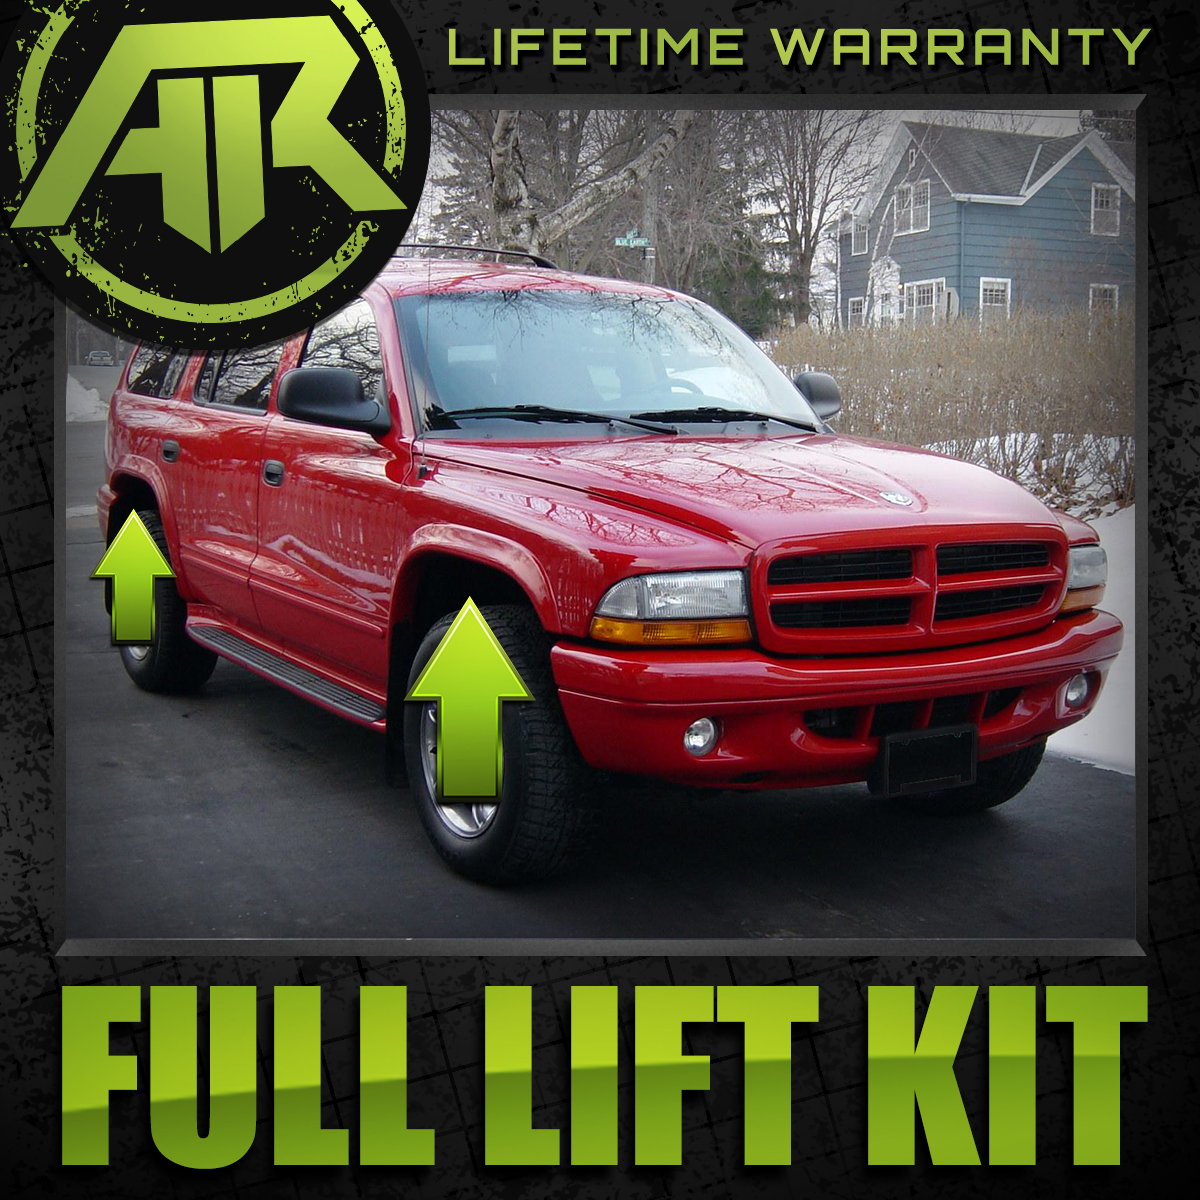 3 Front 2 Rear Shackle Lift Kit For 1998 2003 Dodge Durango 4wd Ebay